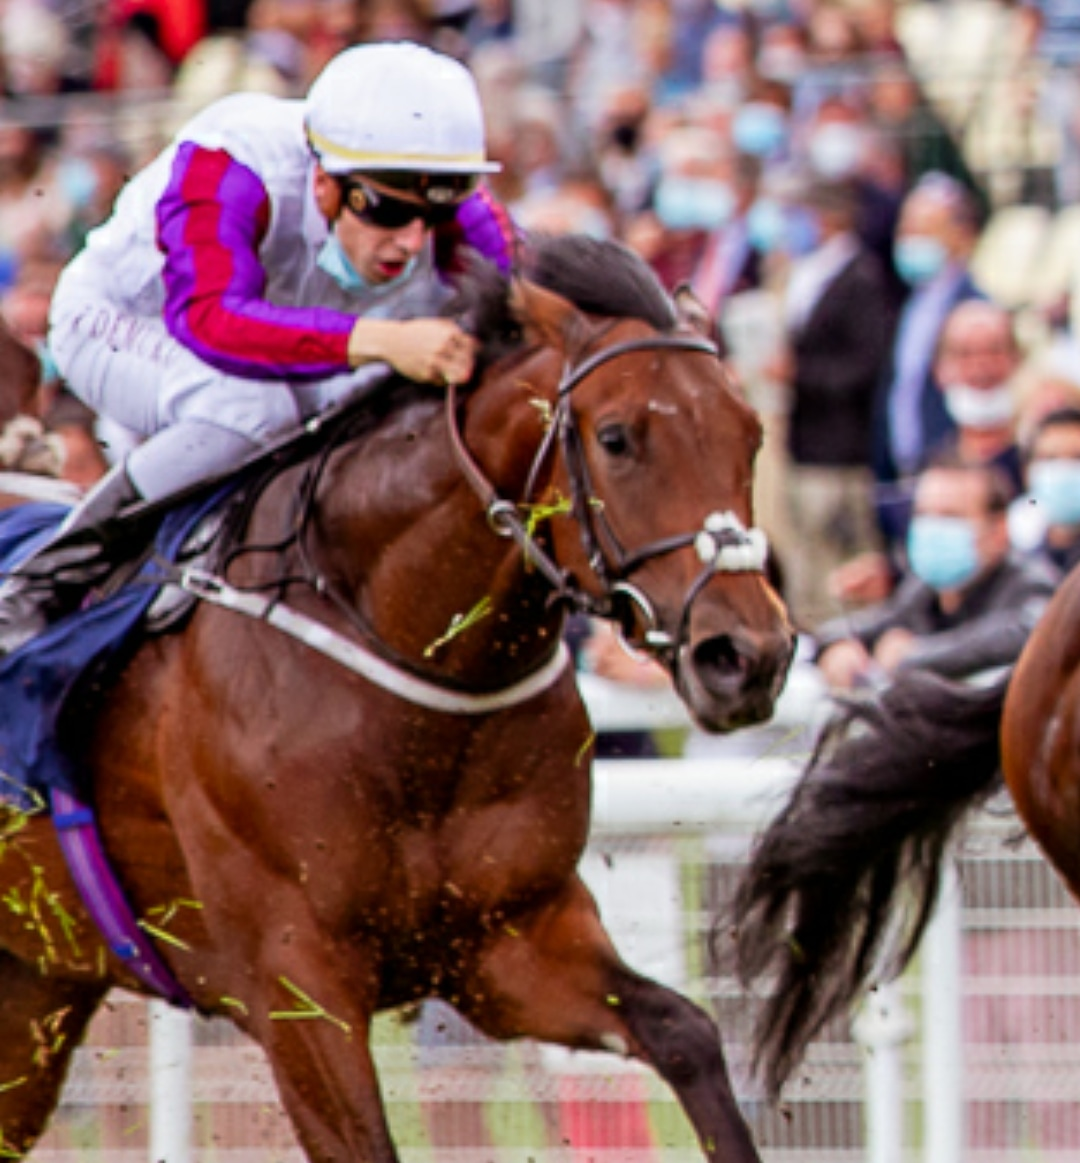 RHYTHM MASTER heads to @Ascot for the @RichardFahey team for the Jersey Stakes.   and debutant ROLLAJAM goes to @Redcarracing for @jeddokeeffe.